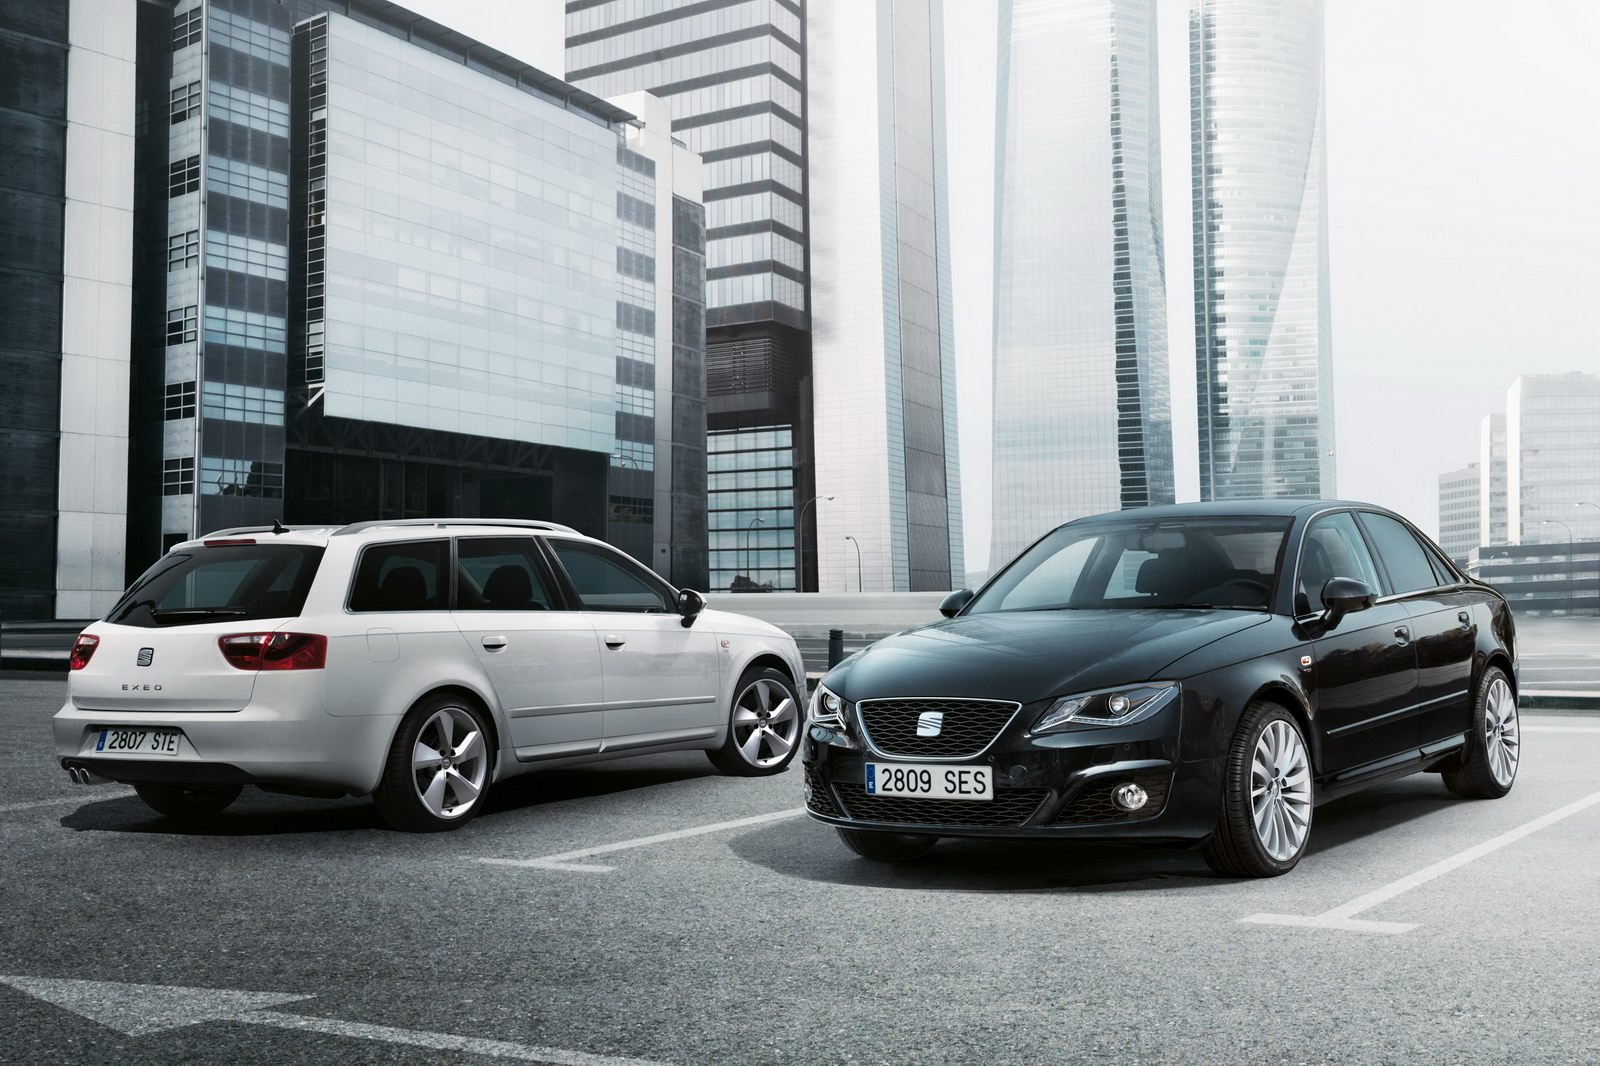 2012 Seat Exeo Saloon and ST 11 2012 SEAT EXEO SALOON AND ST FACELIFT VERSION INTRODUCED